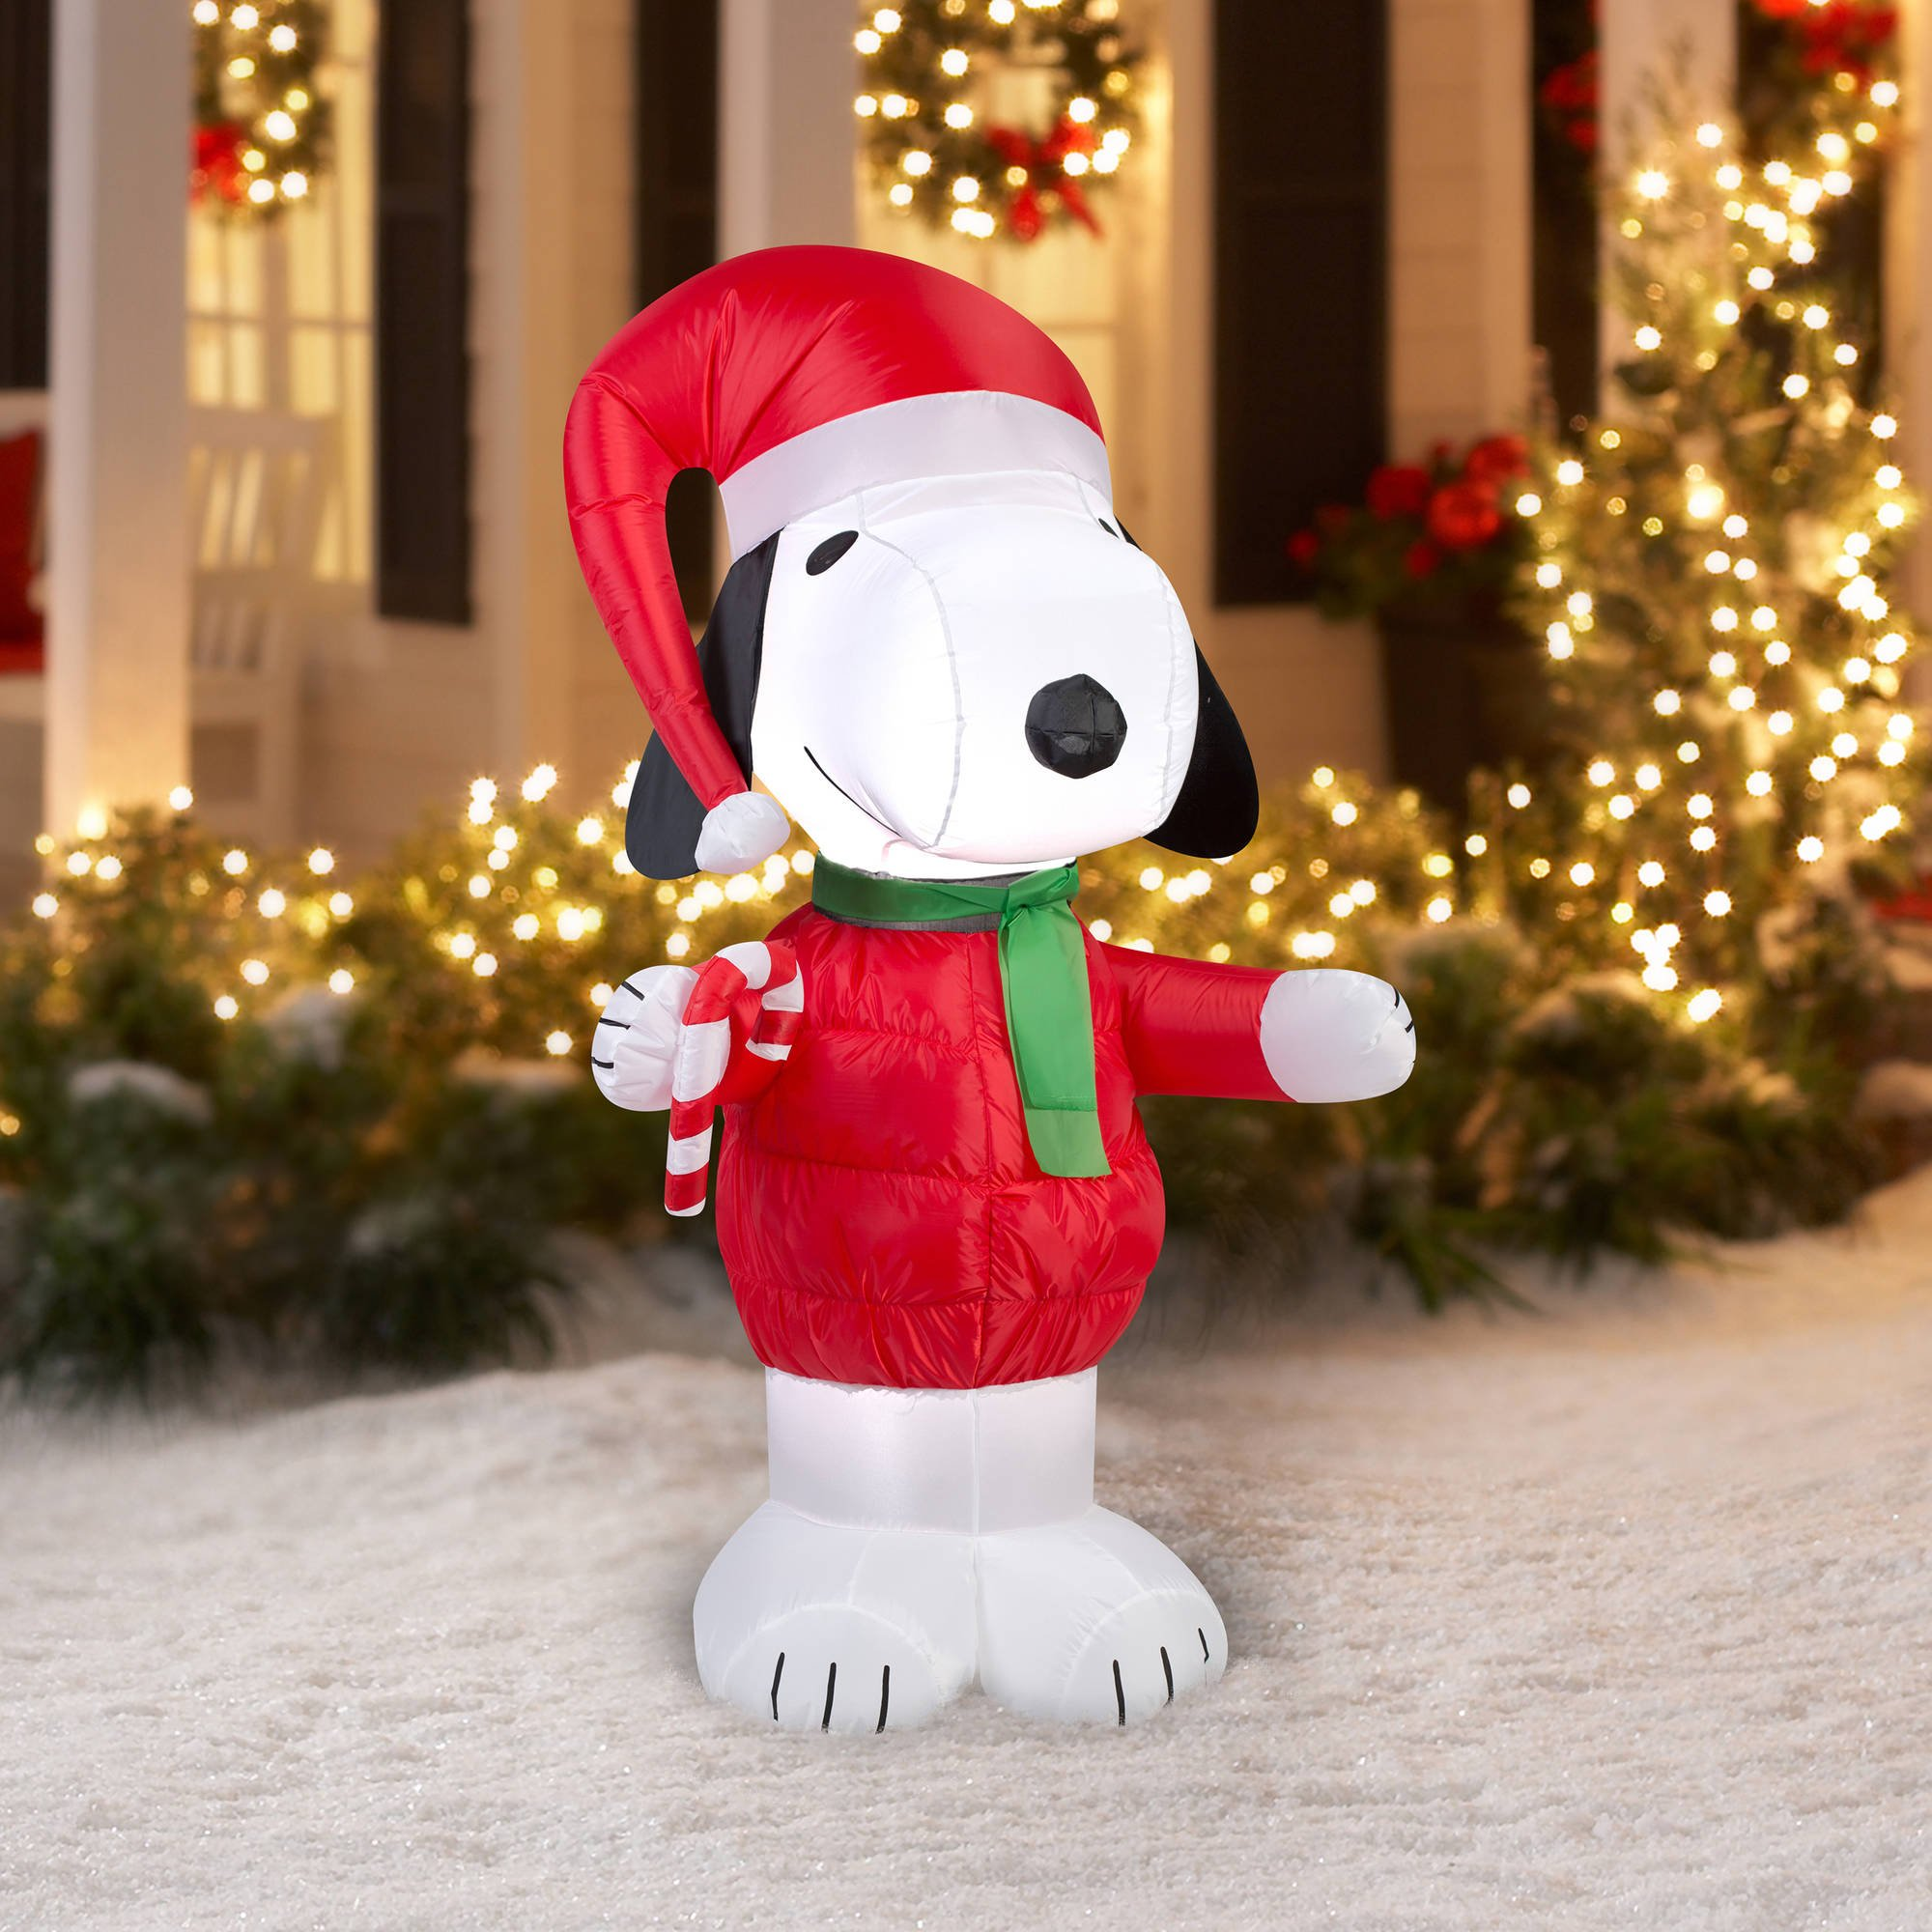 snoopy inflatable christmas yard decorations - Christmas Yard Decorations